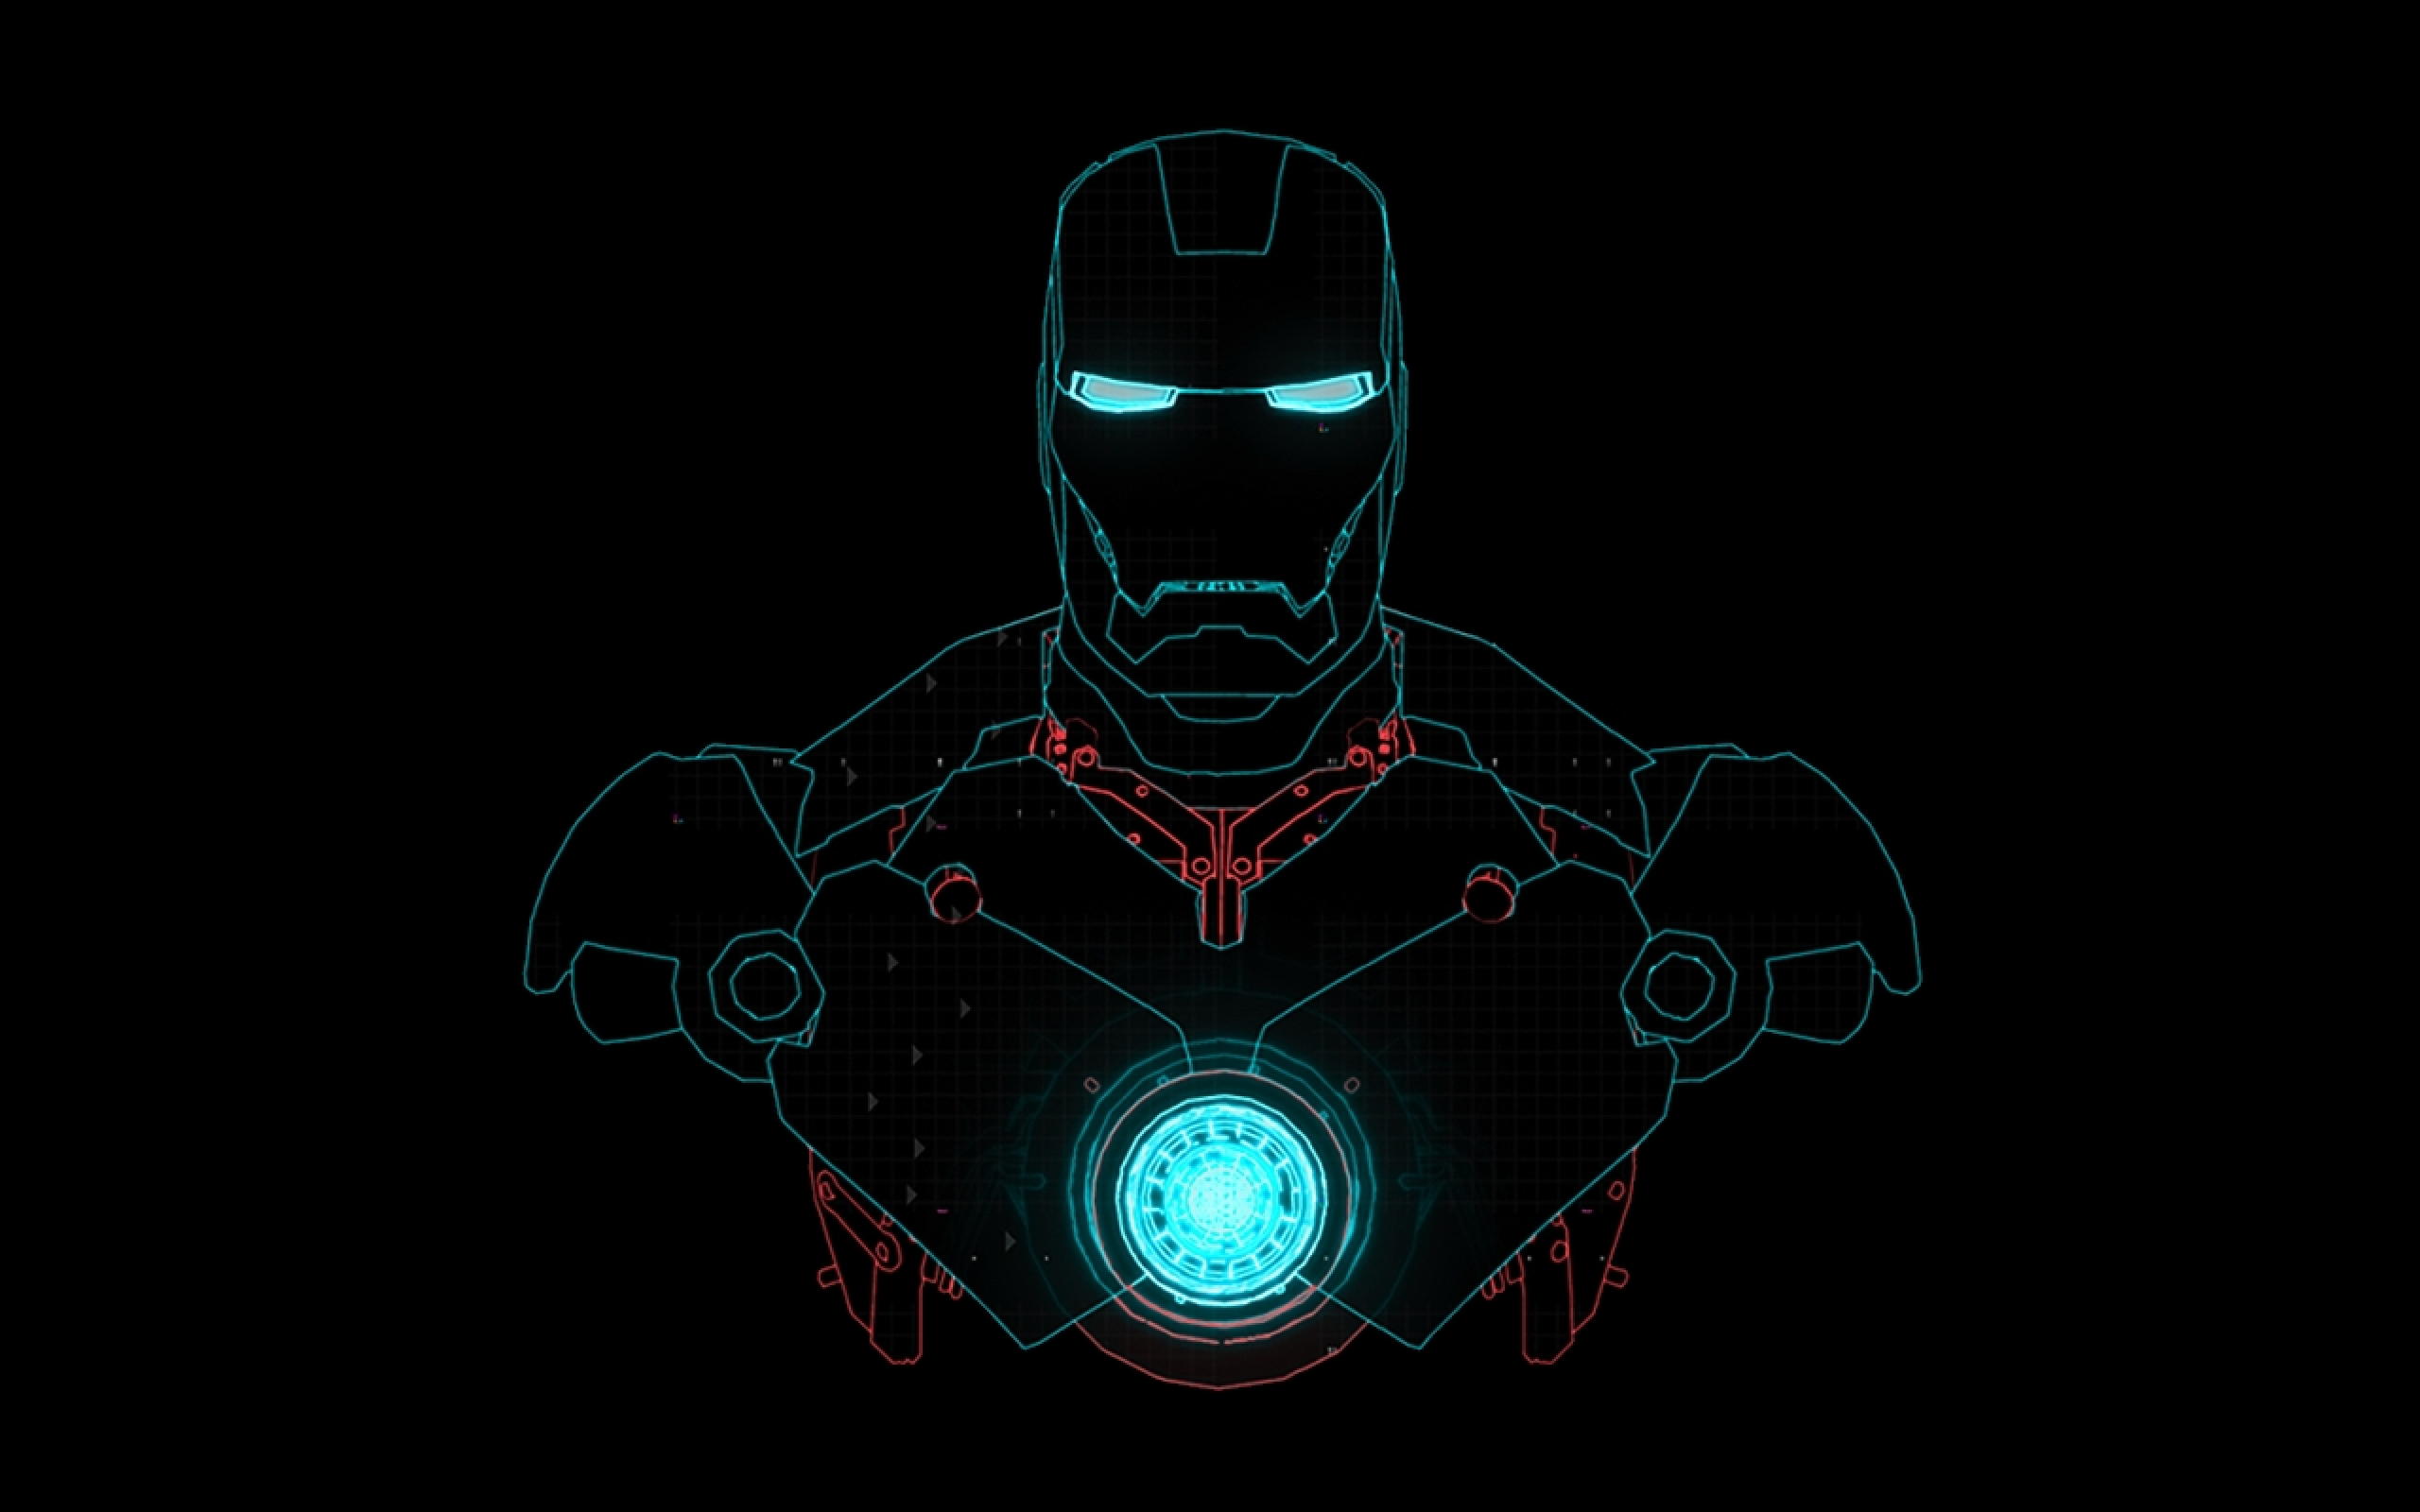 Android Wallpaper for AMOLED displays 2560x1600